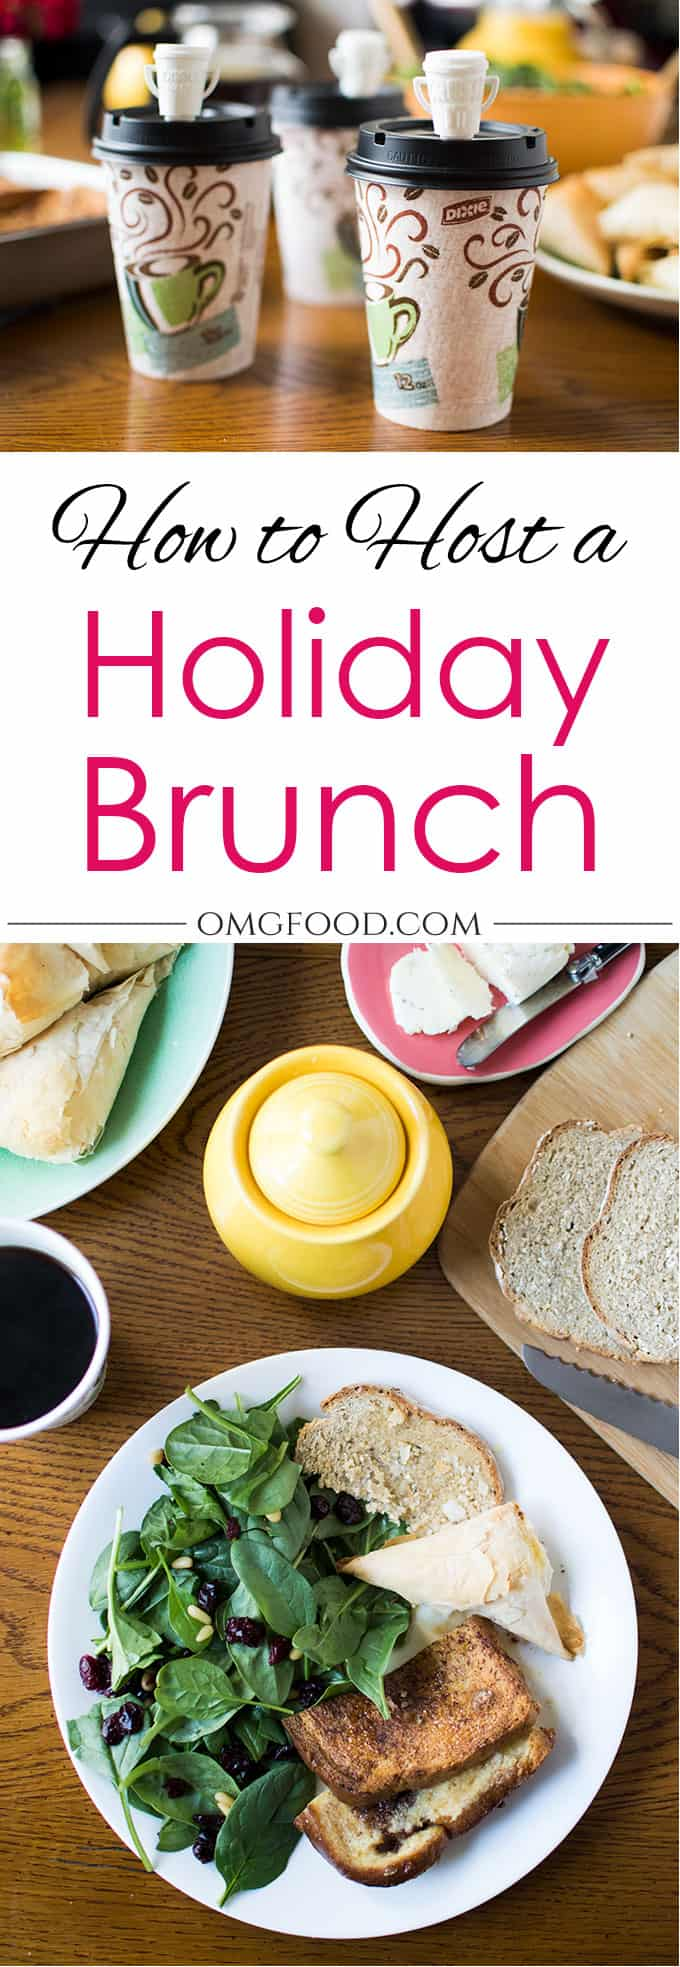 How to Host a Holiday Brunch: Keep it easy and hassle-free with @DixieProducts! #CupForCrushingIt #sponsored | omgfood.com